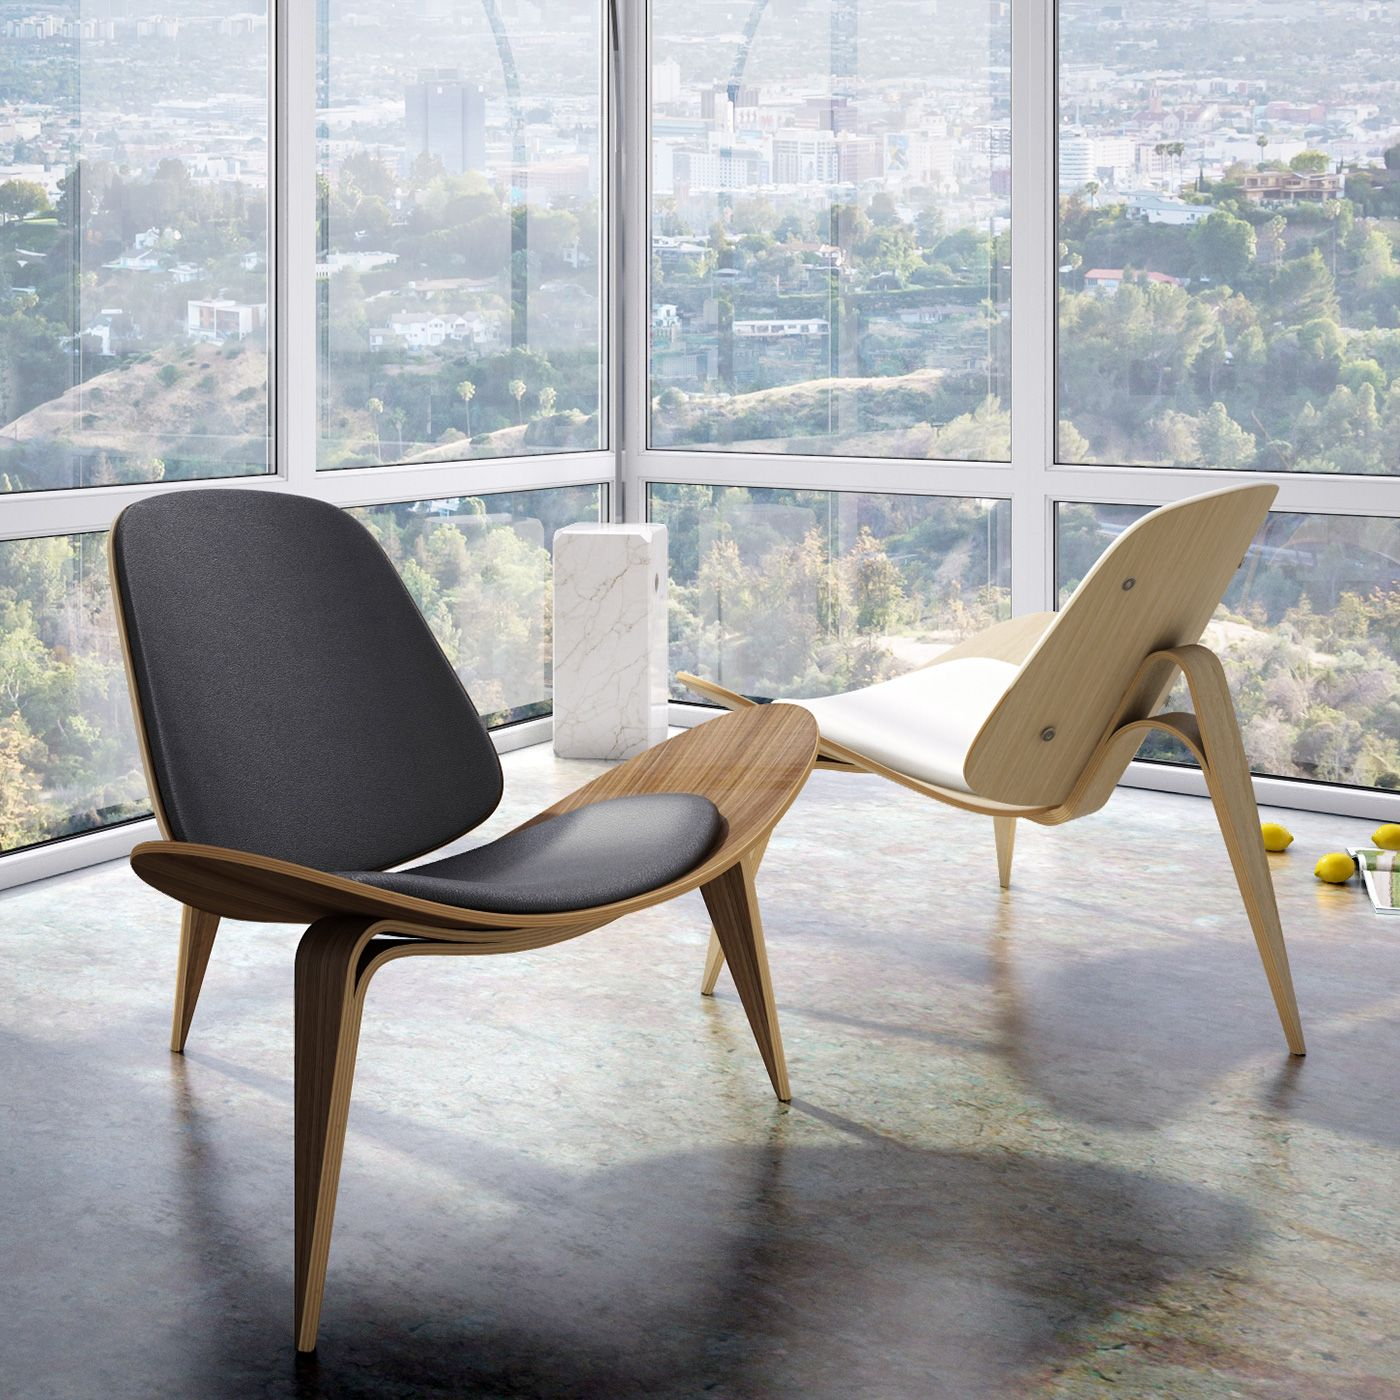 hans wegner shell chair | truly appreciate, shell and modern